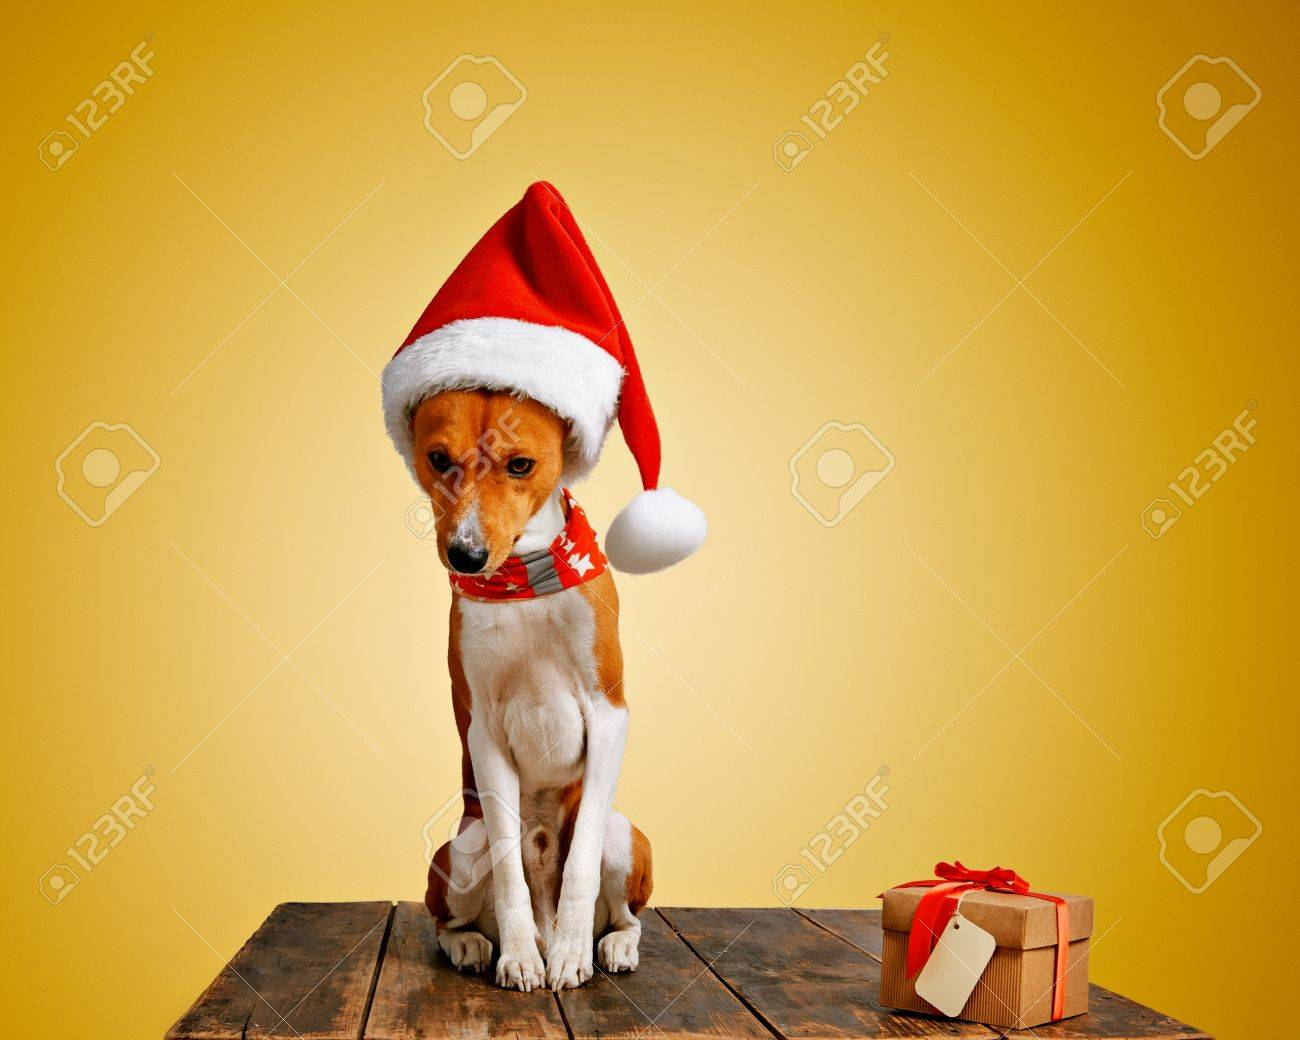 67602fc445e Funny beautiful shy basenji dog wearing christmas santa hat and sitting  next to craft box with holiday gift tied with red tape and yellow small  address tag